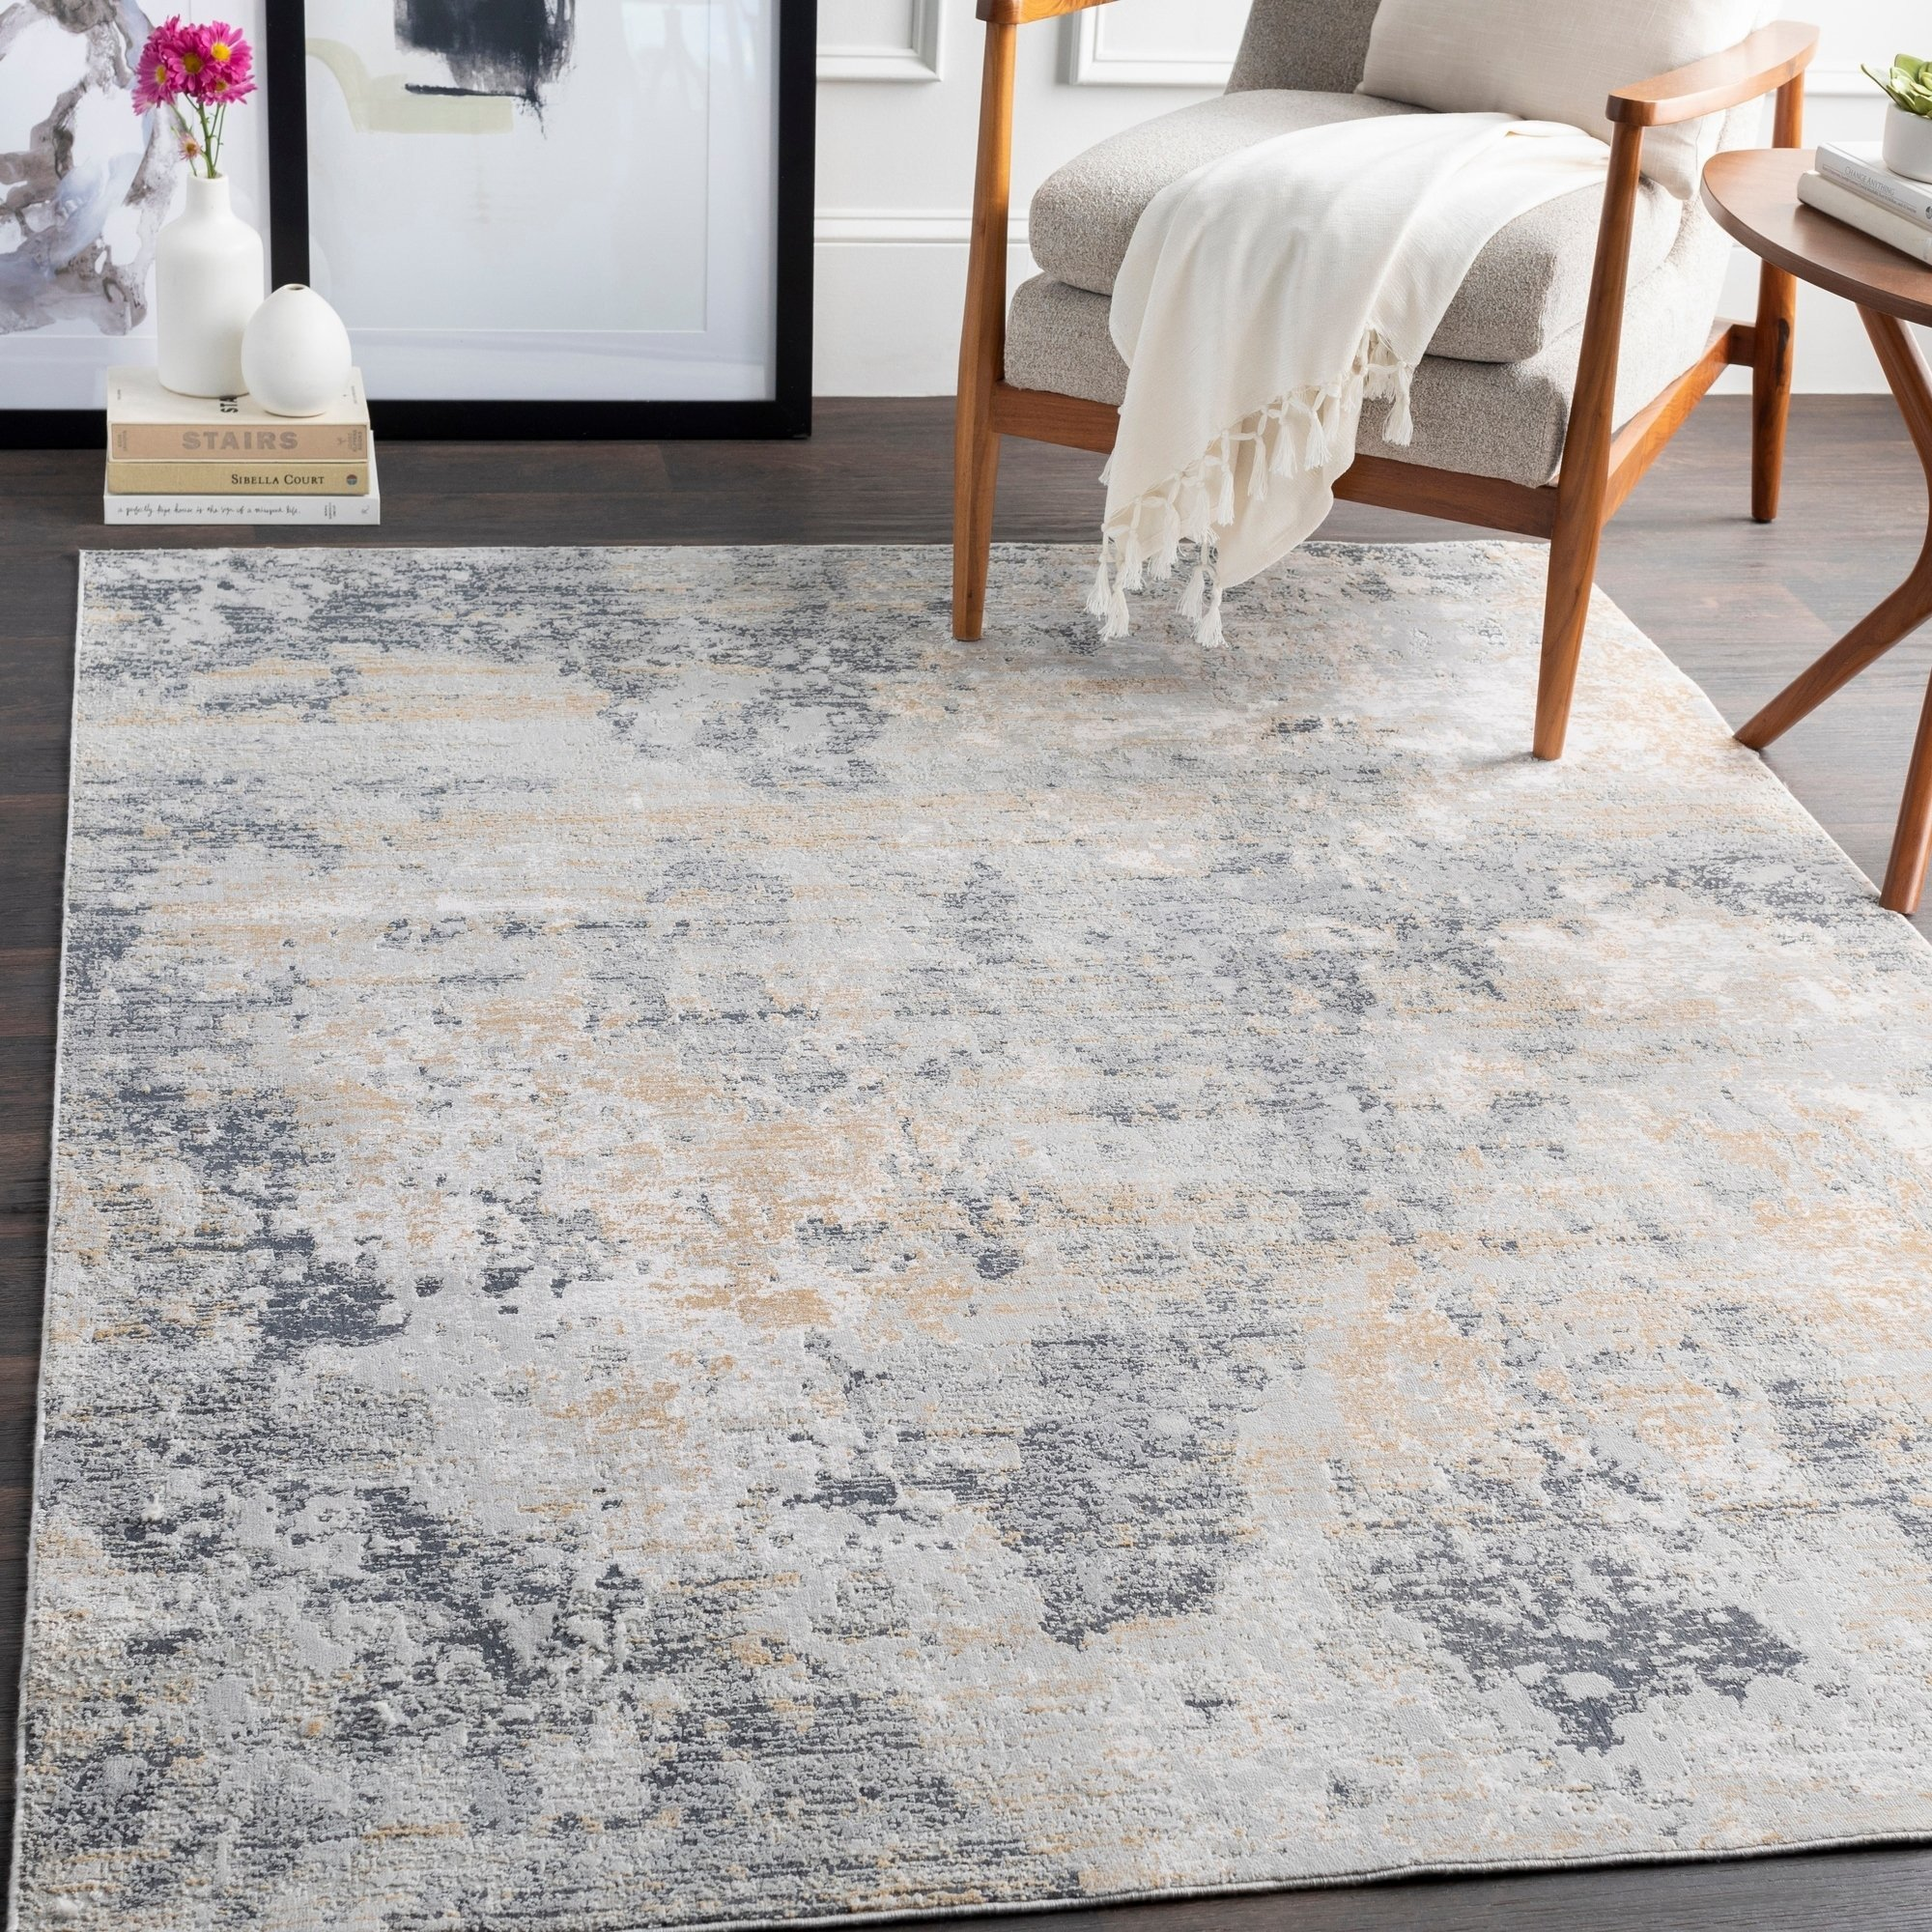 Area Rug for Bedroom Inspirational Line Shopping Bedding Furniture Electronics Jewelry